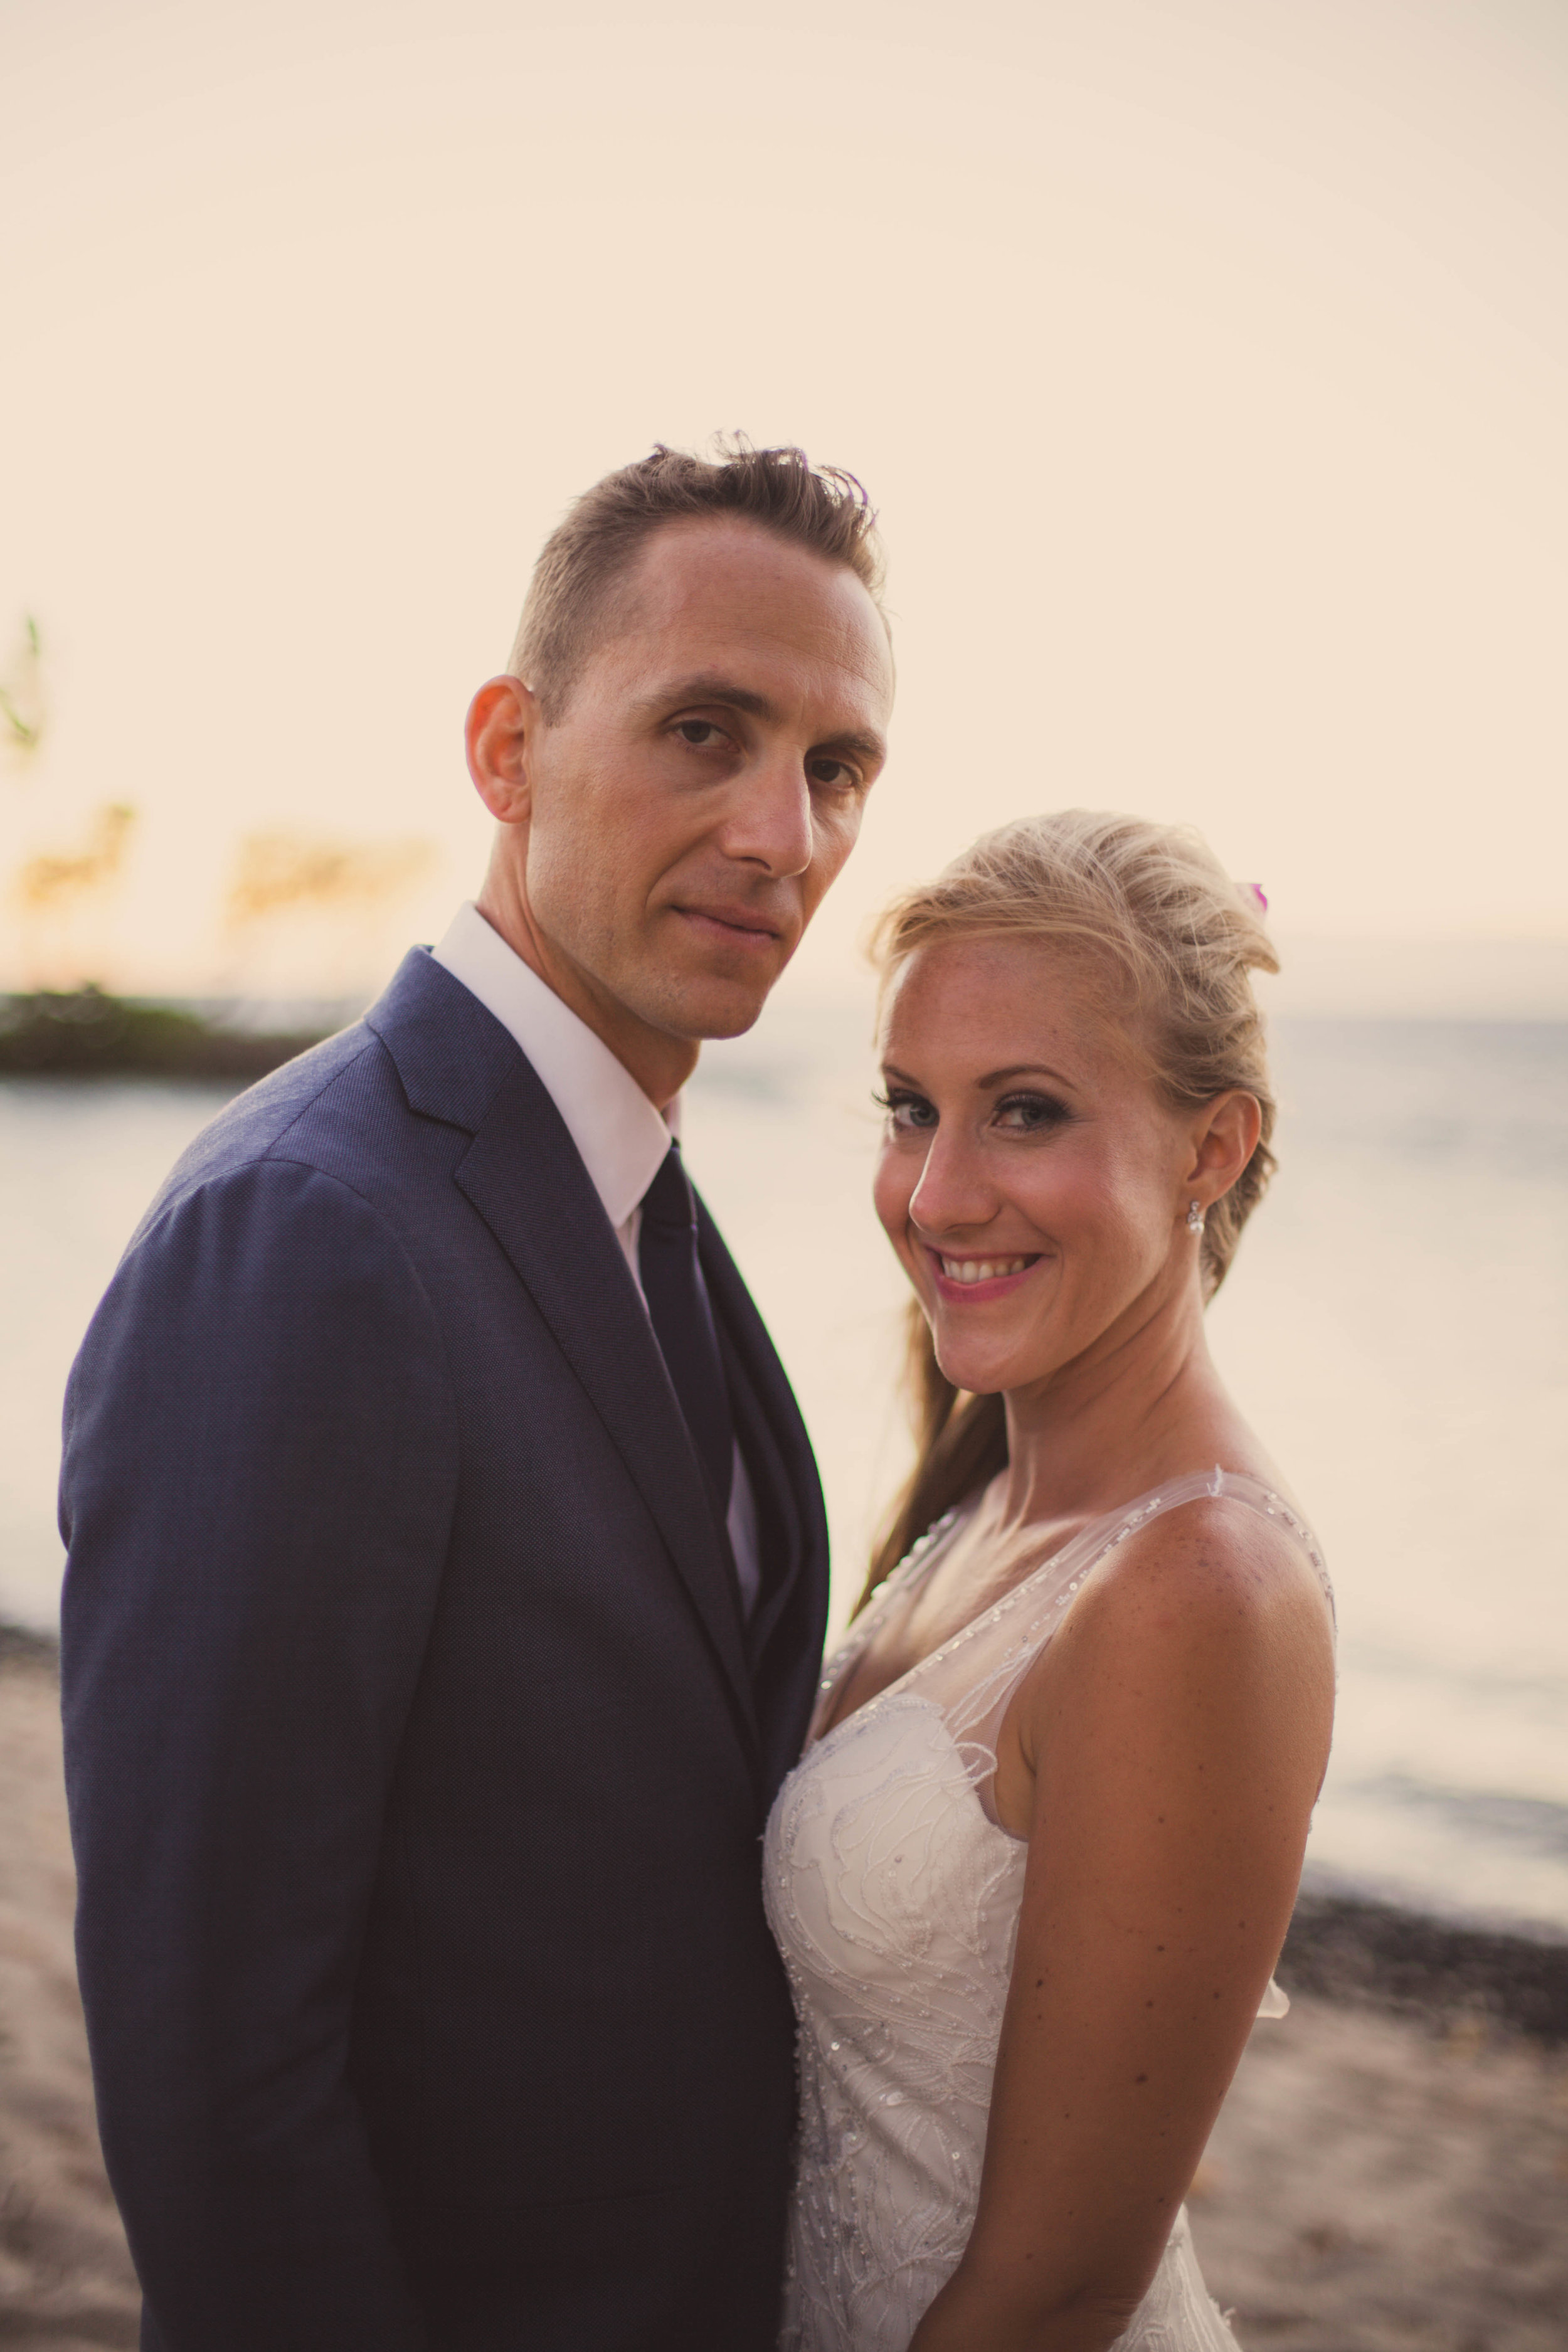 big island hawaii fairmont orchid beach wedding © kelilina photography 20170812185721-1.jpg